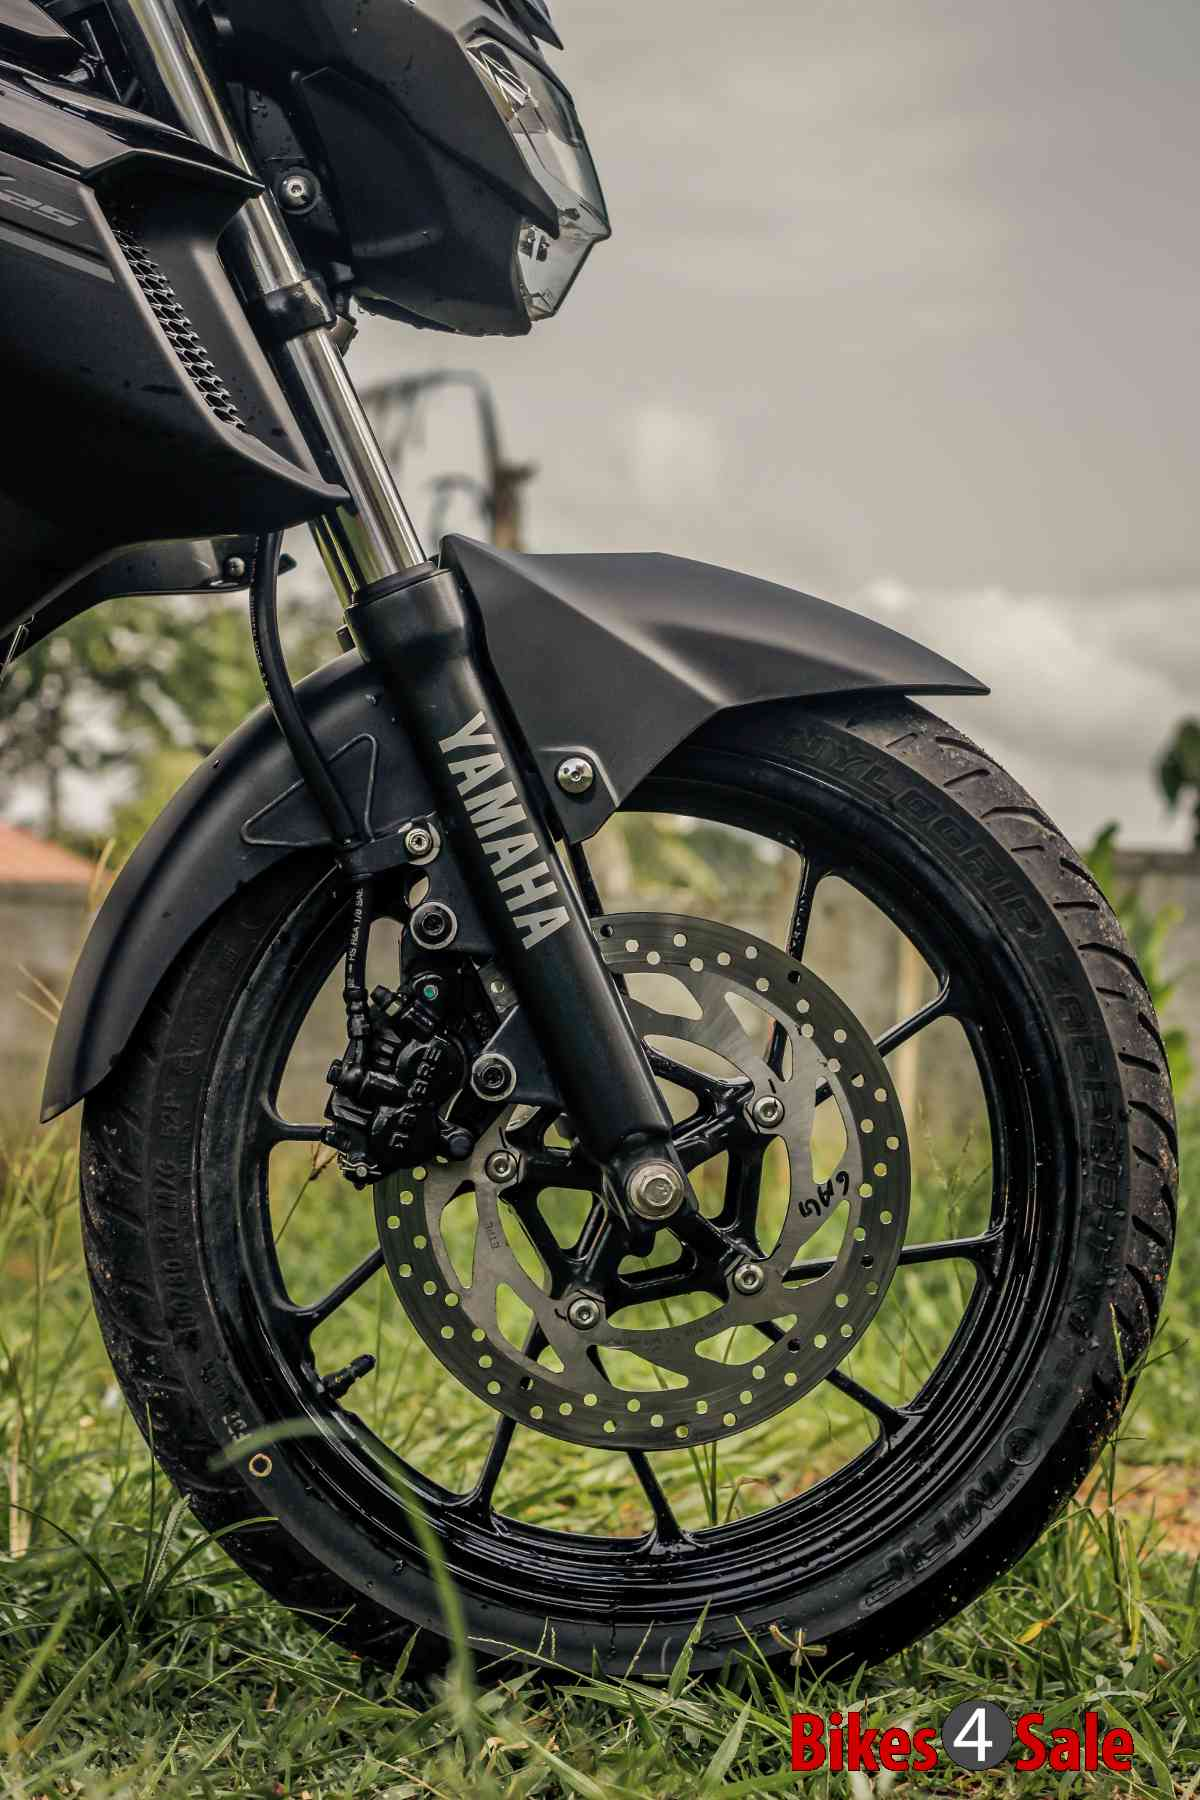 Yamaha Fz25 front telescopic suspension and disc brake